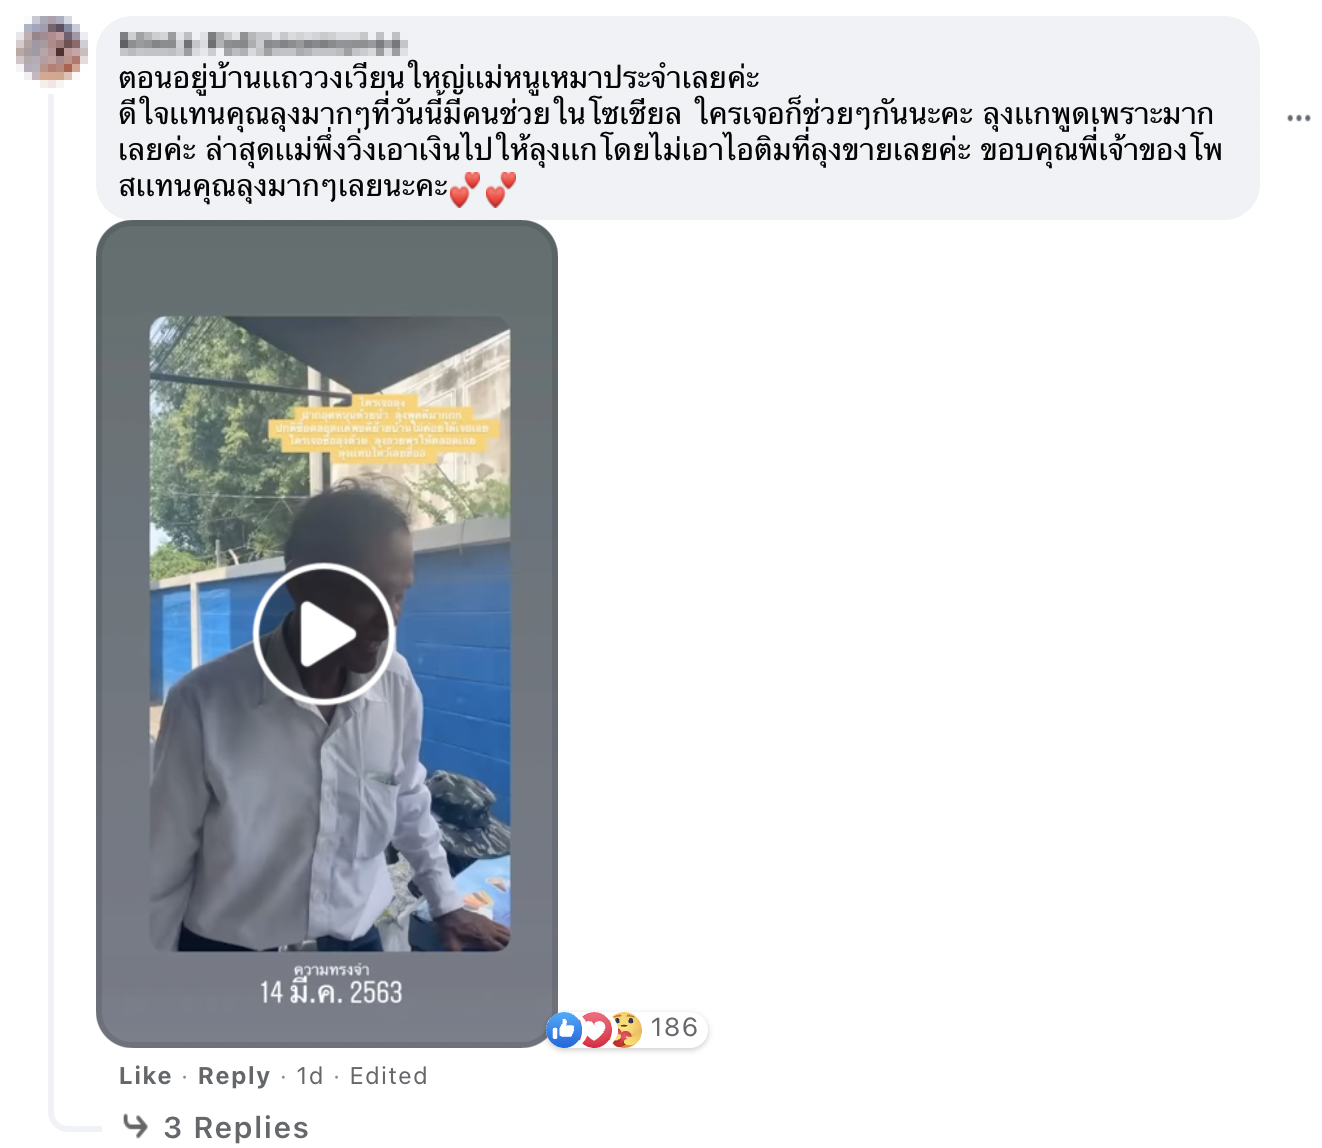 A Facebook Post of Thai Ice Cream Uncle Being Unable To Have His Ice Cream Sold Goes Viral